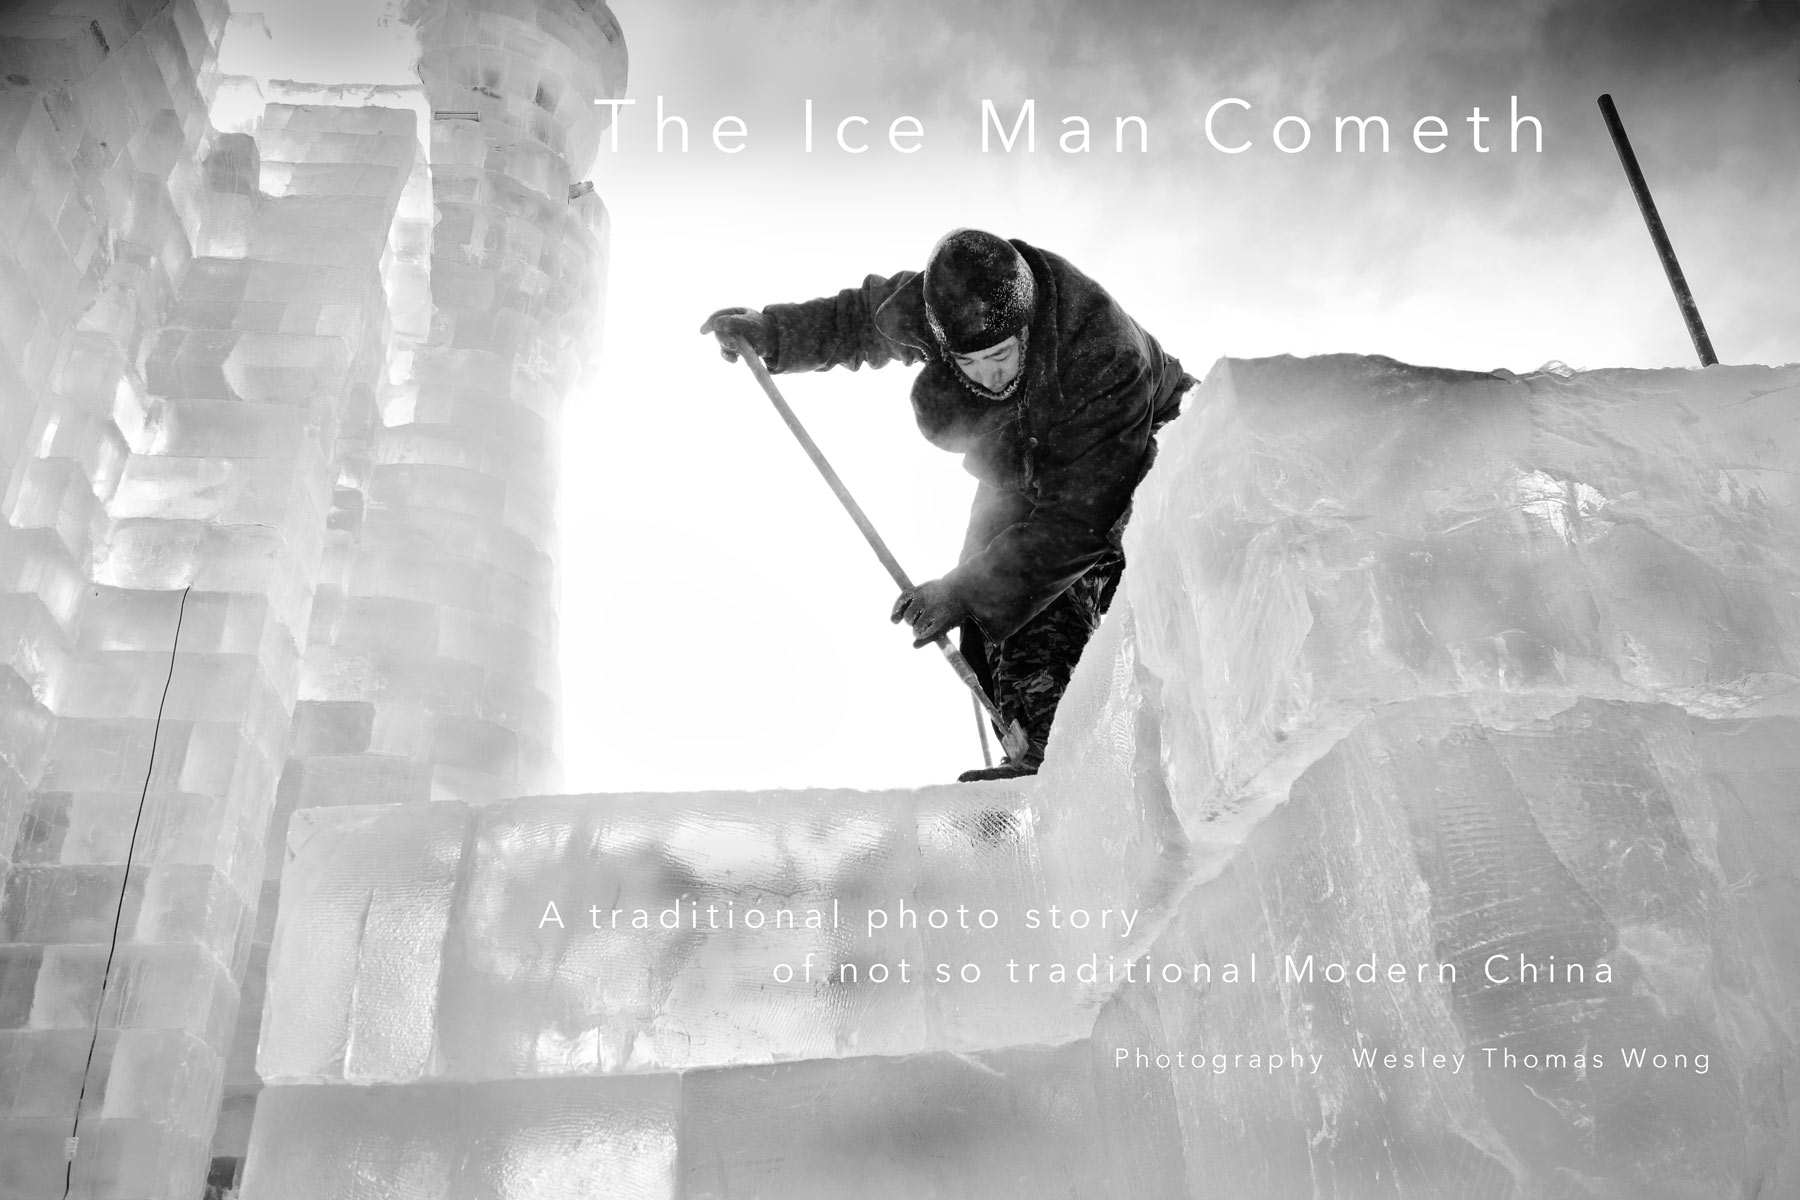 : THE ICE MAN COMETH : WESLEY THOMAS WONG PHOTOGRAPHY